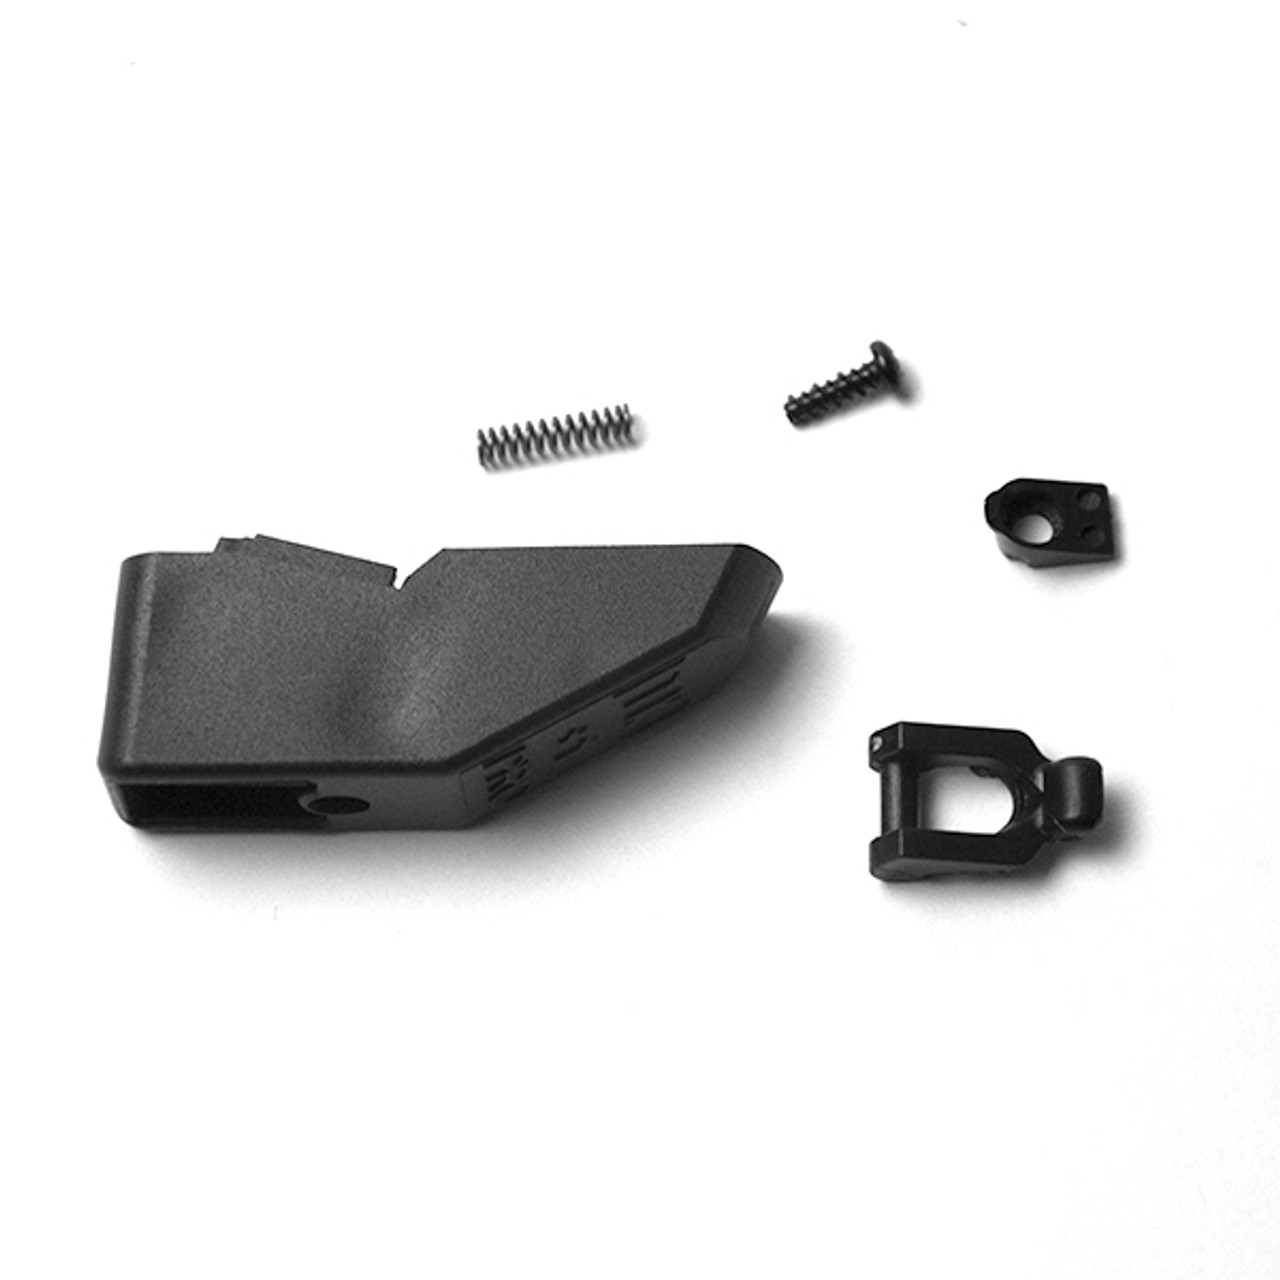 Tandemkross - 2Pack of Magazine Bumpers